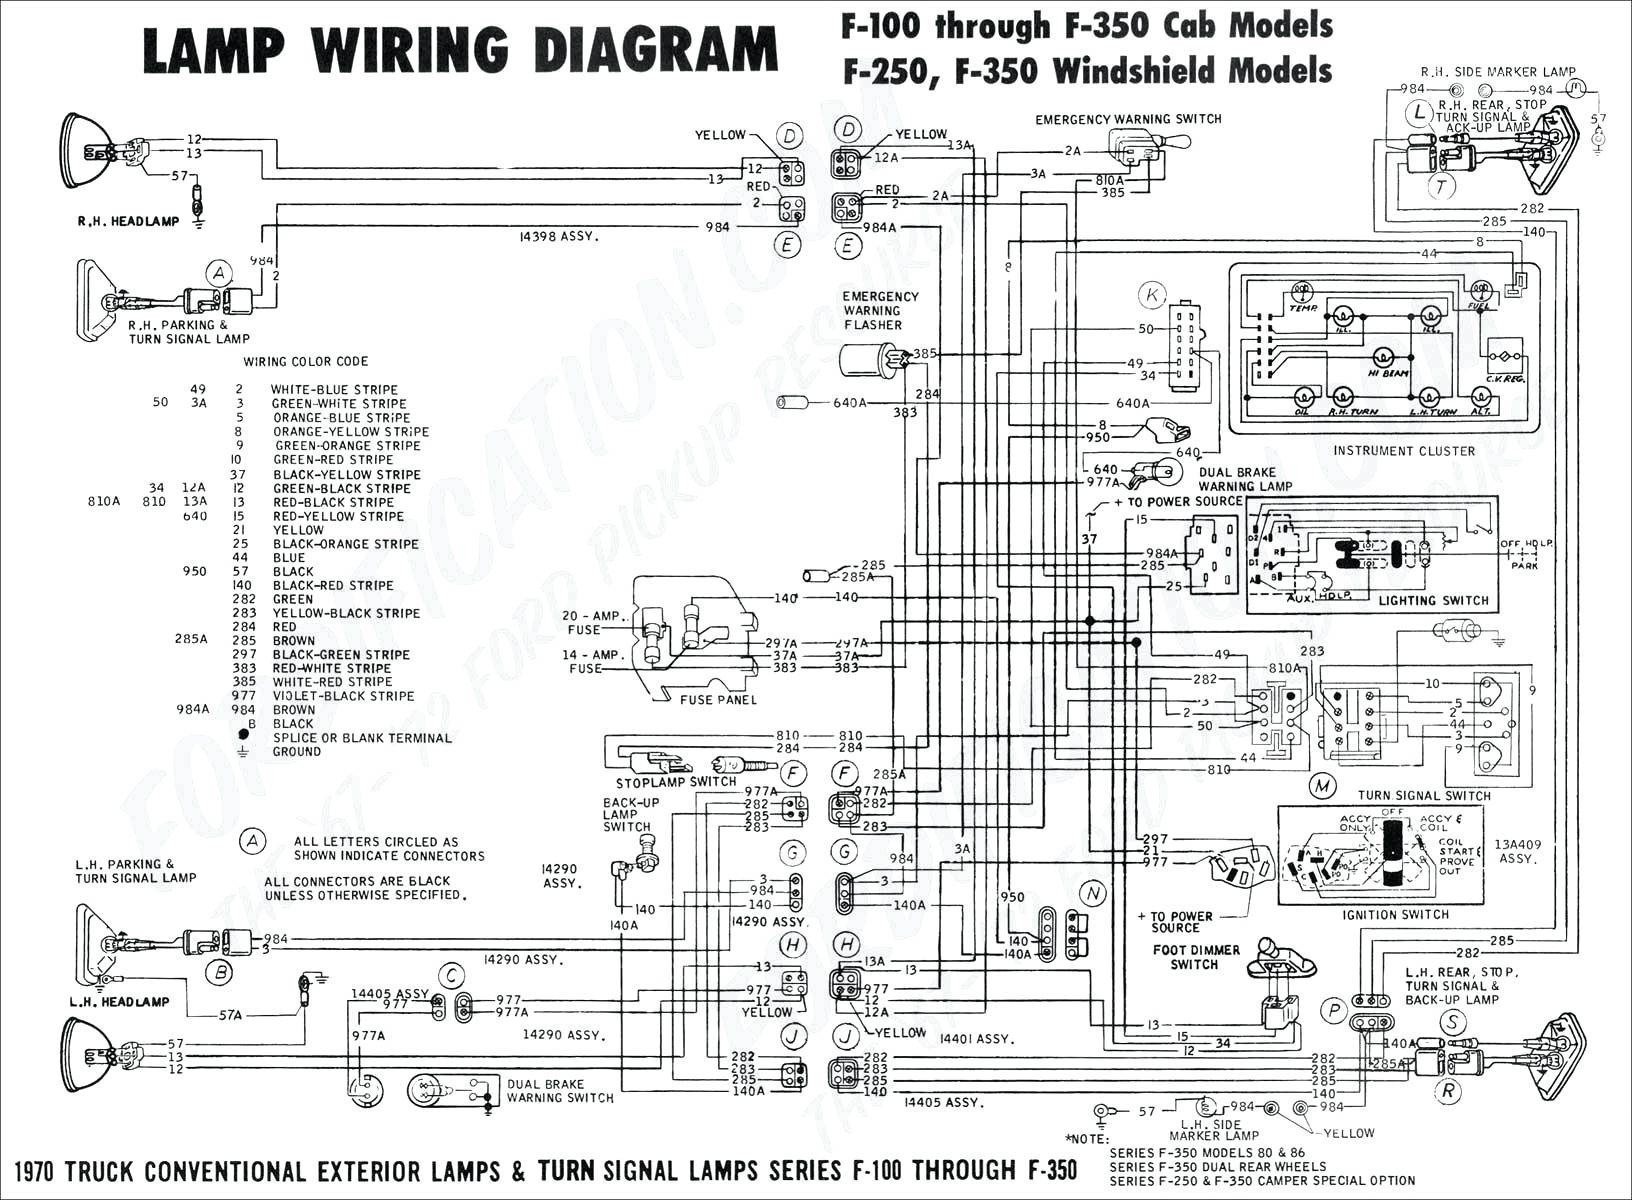 Klipsch Promedia 2 1 Wiring Diagram Wiring Diagram for 2 Channel Amplifier Save Bose Amp Wiring Diagram Of Klipsch Promedia 2 1 Wiring Diagram